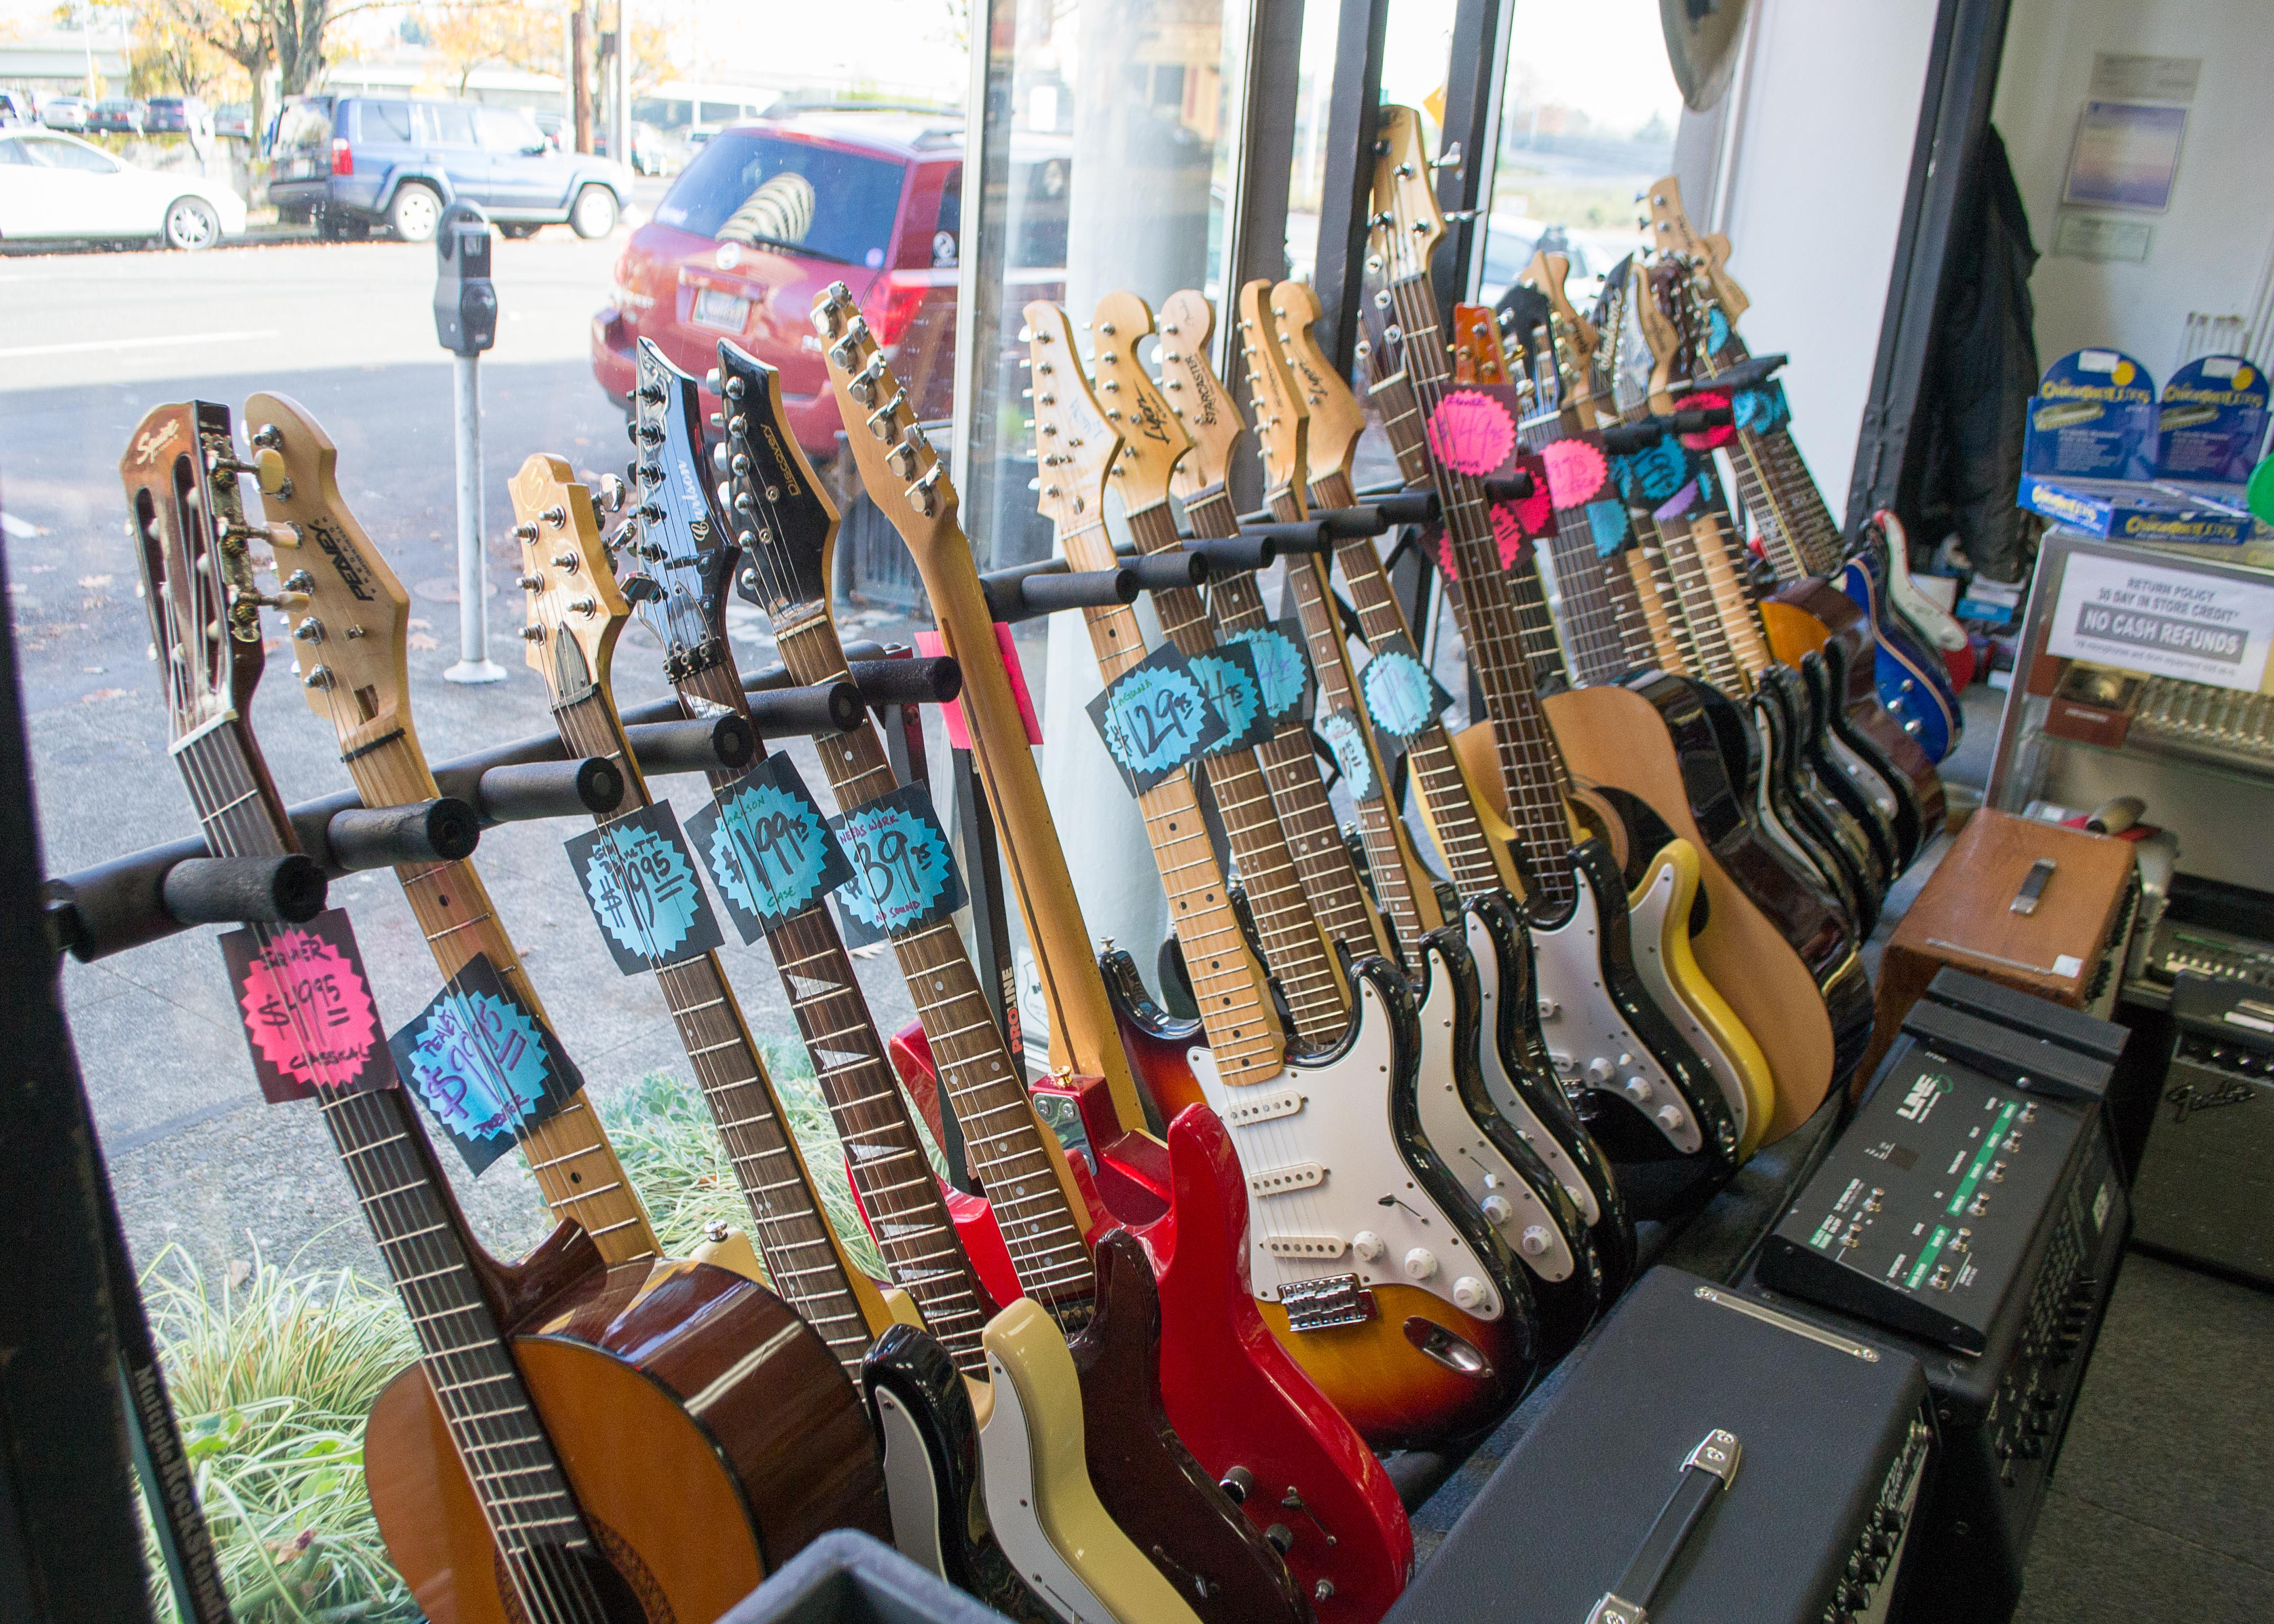 Guitar Store In Lake Worth Fl Near Villas Santorini